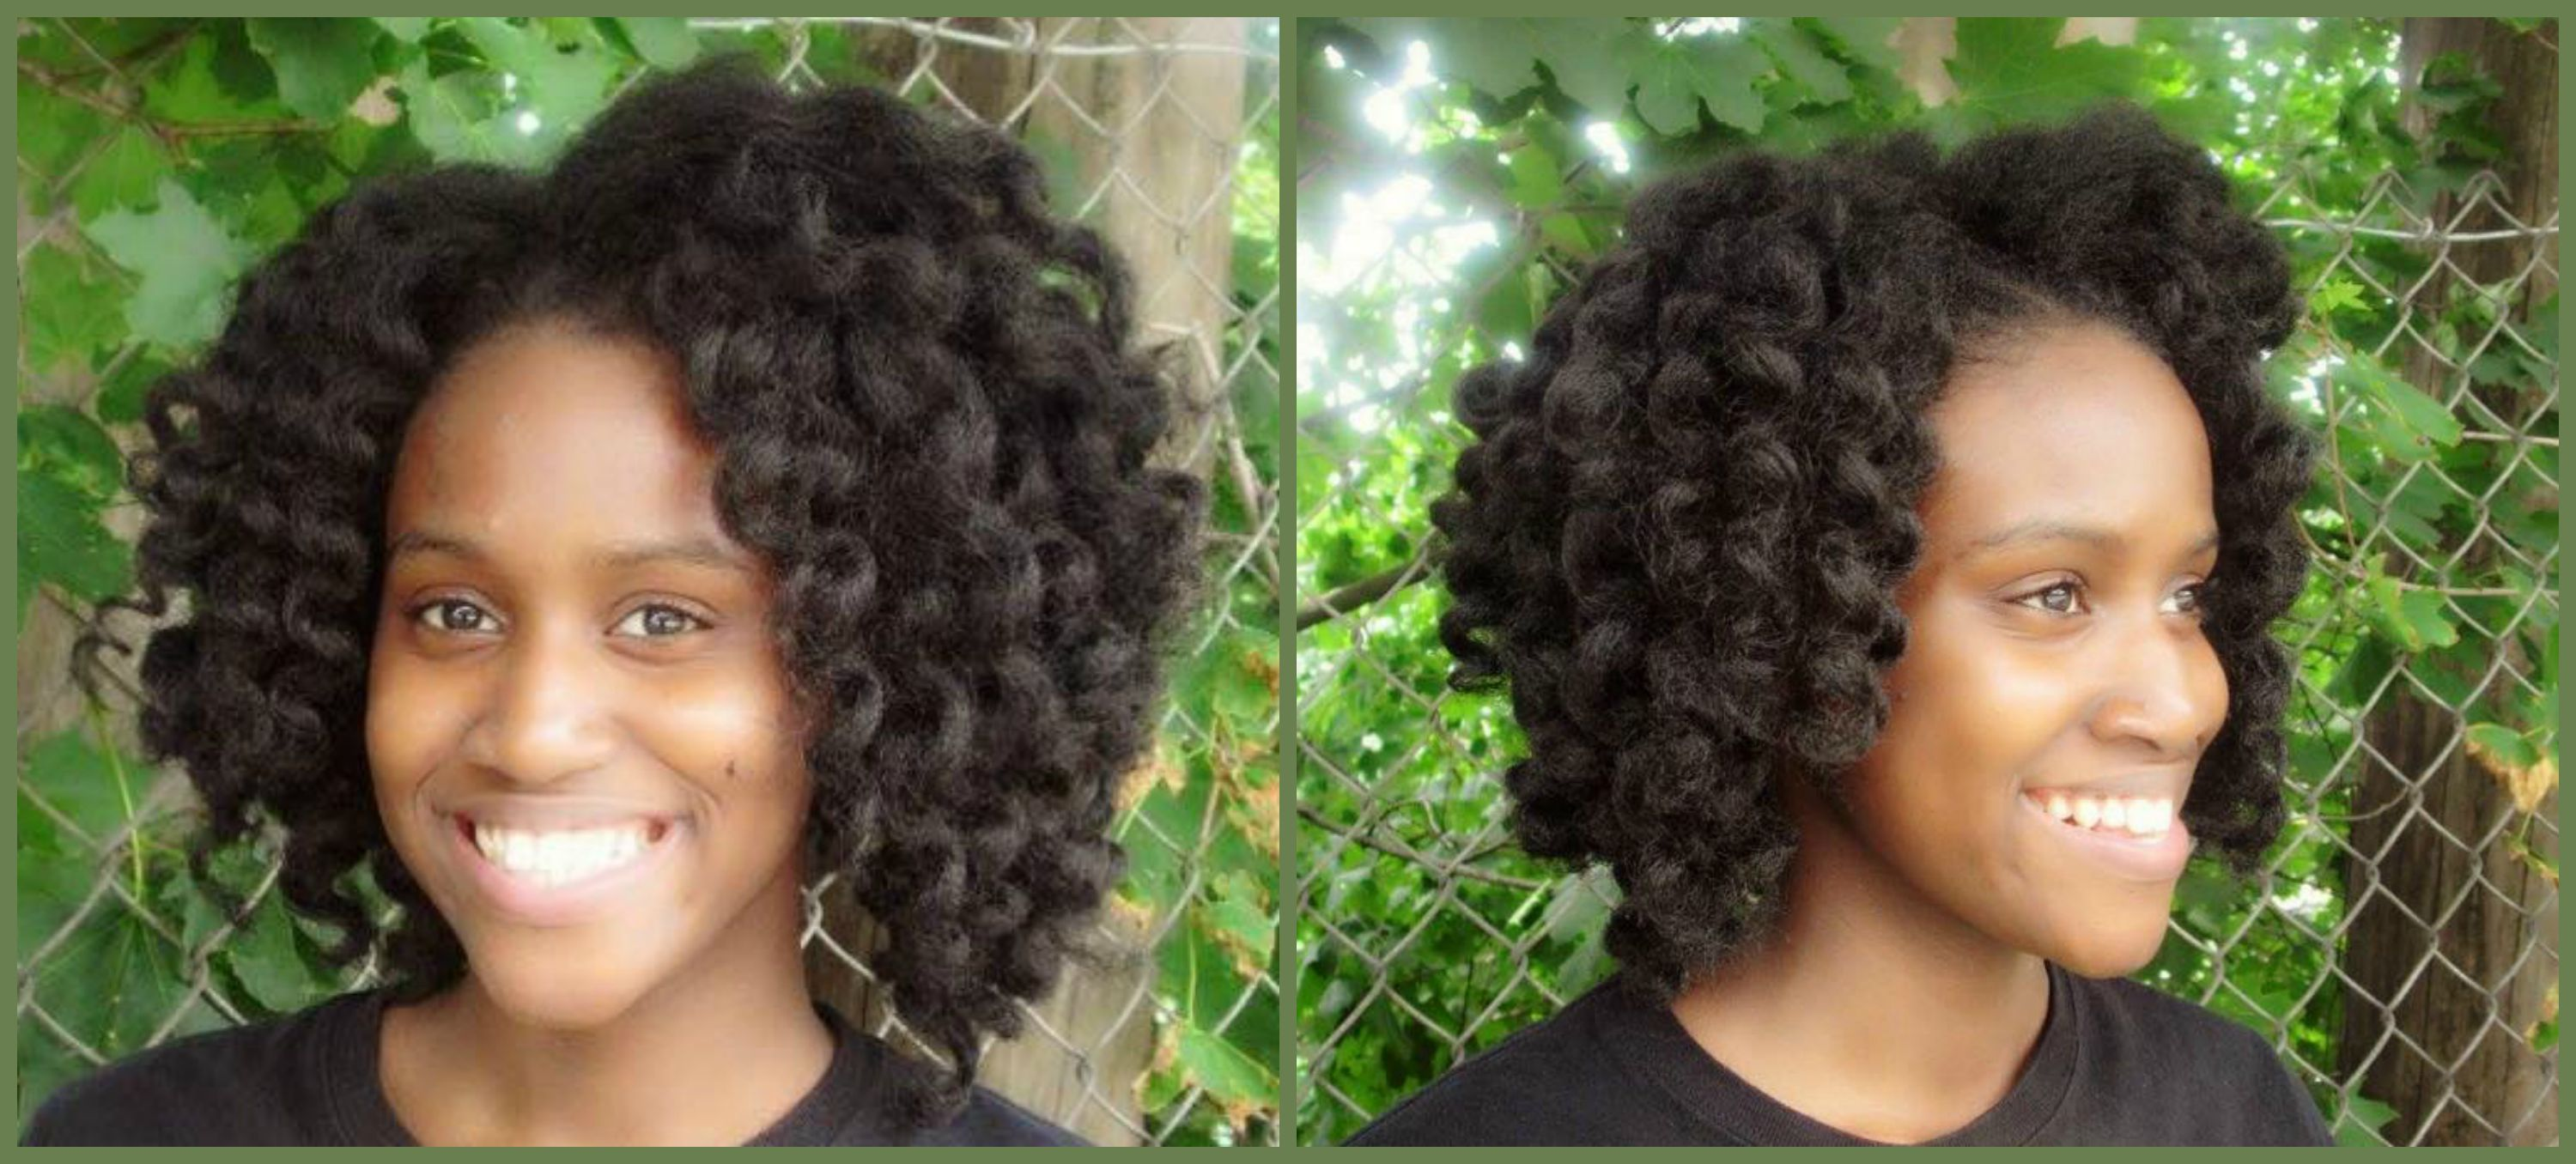 Crochet Braids Nj : Knotless Crochet Braids Newark Nj hairstylegalleries.com